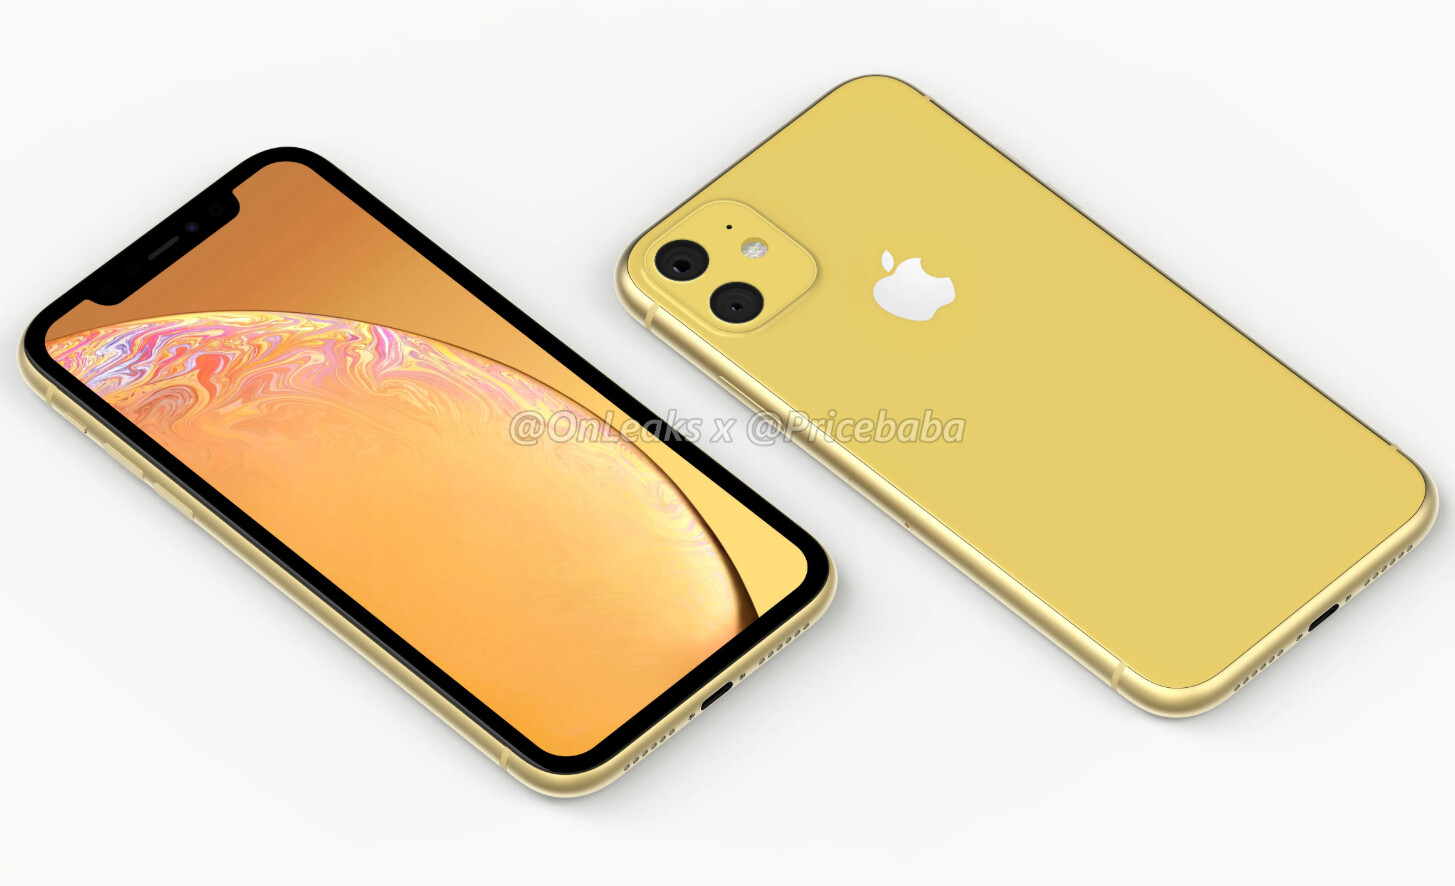 Alleged iPhone XR 2019 Renders Reveal Dual-Camera Module, Glass Back Design